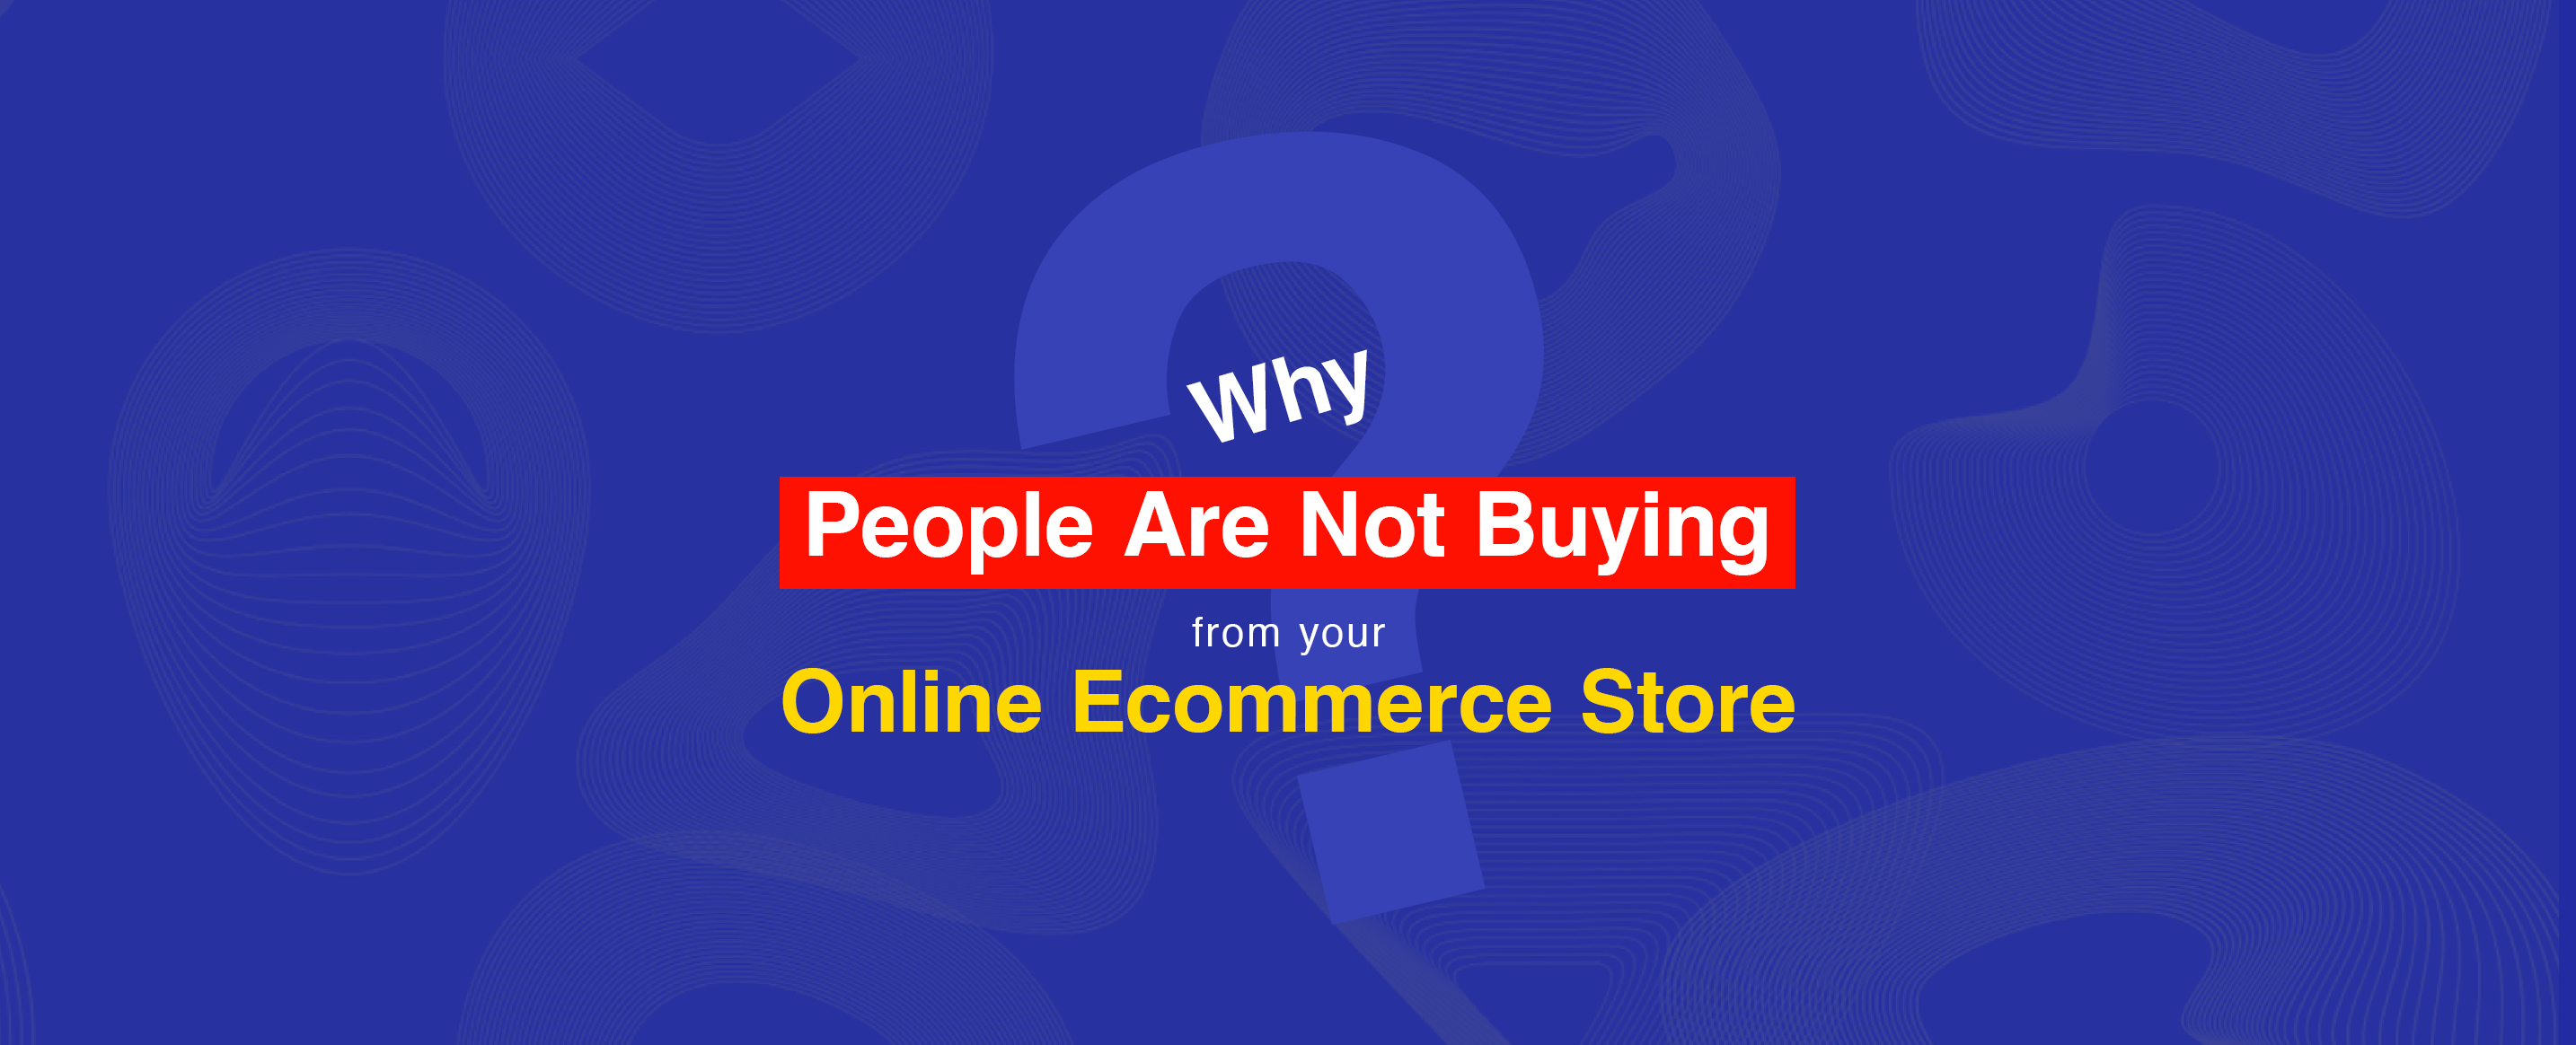 Why-People-Are-Not-Buying-from-your-Online-Ecommerce-Store